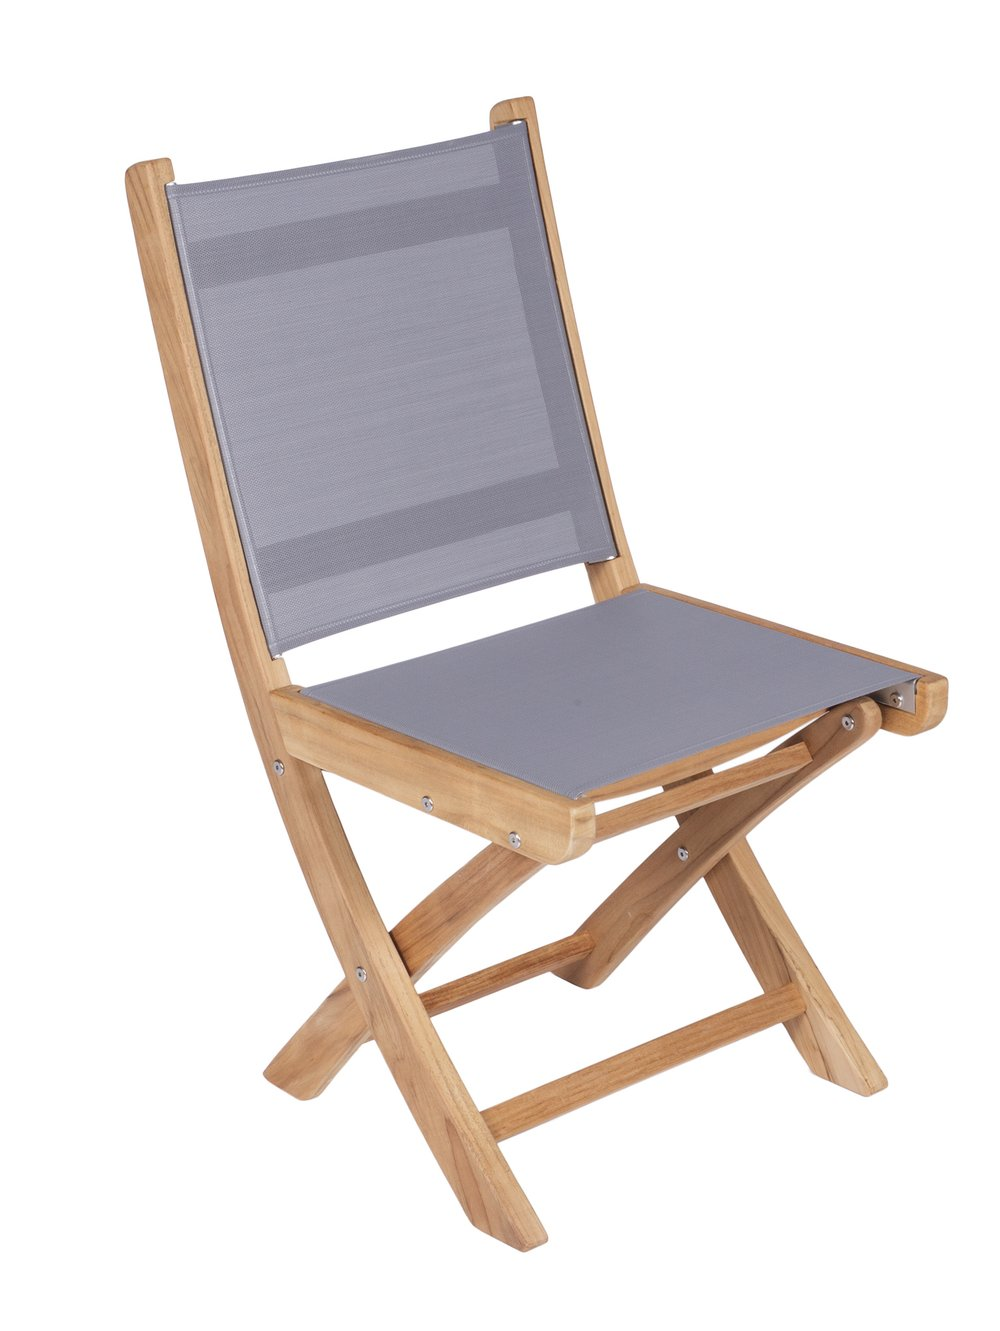 ROYAL TEAK - Sailmate Folding Side Chair    Sling Colors : Navy, Moss, Grey, Black & White